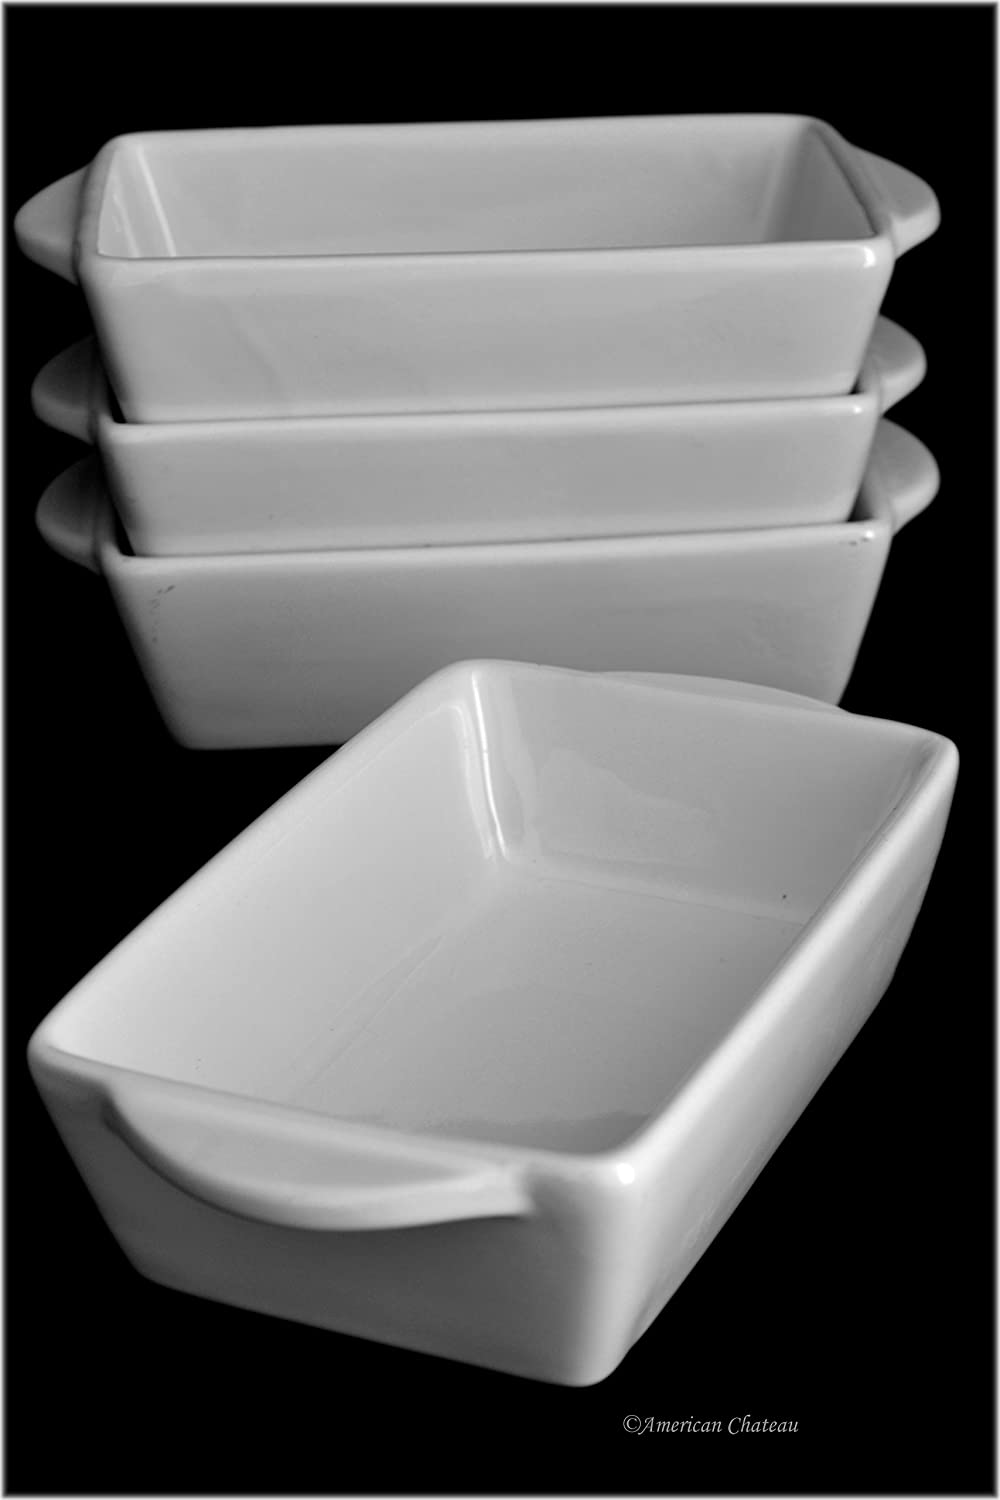 Set 4 Individual Portion Oven-to-Table White Porcelain Casserole Baking Dishes